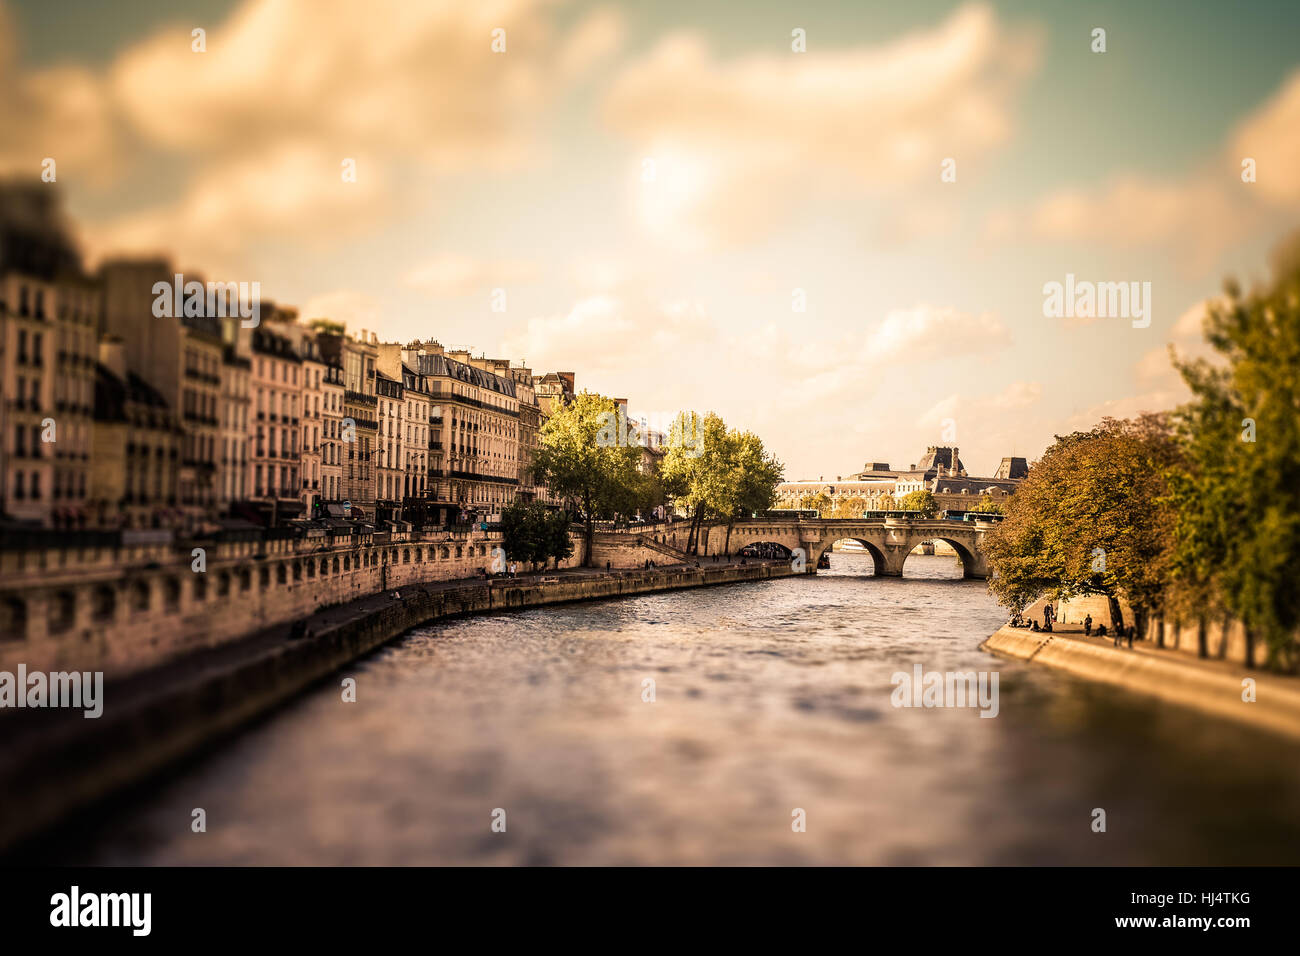 Tilt-shift miniature view of the River Seine from Paris with vintage filter effect - Stock Image